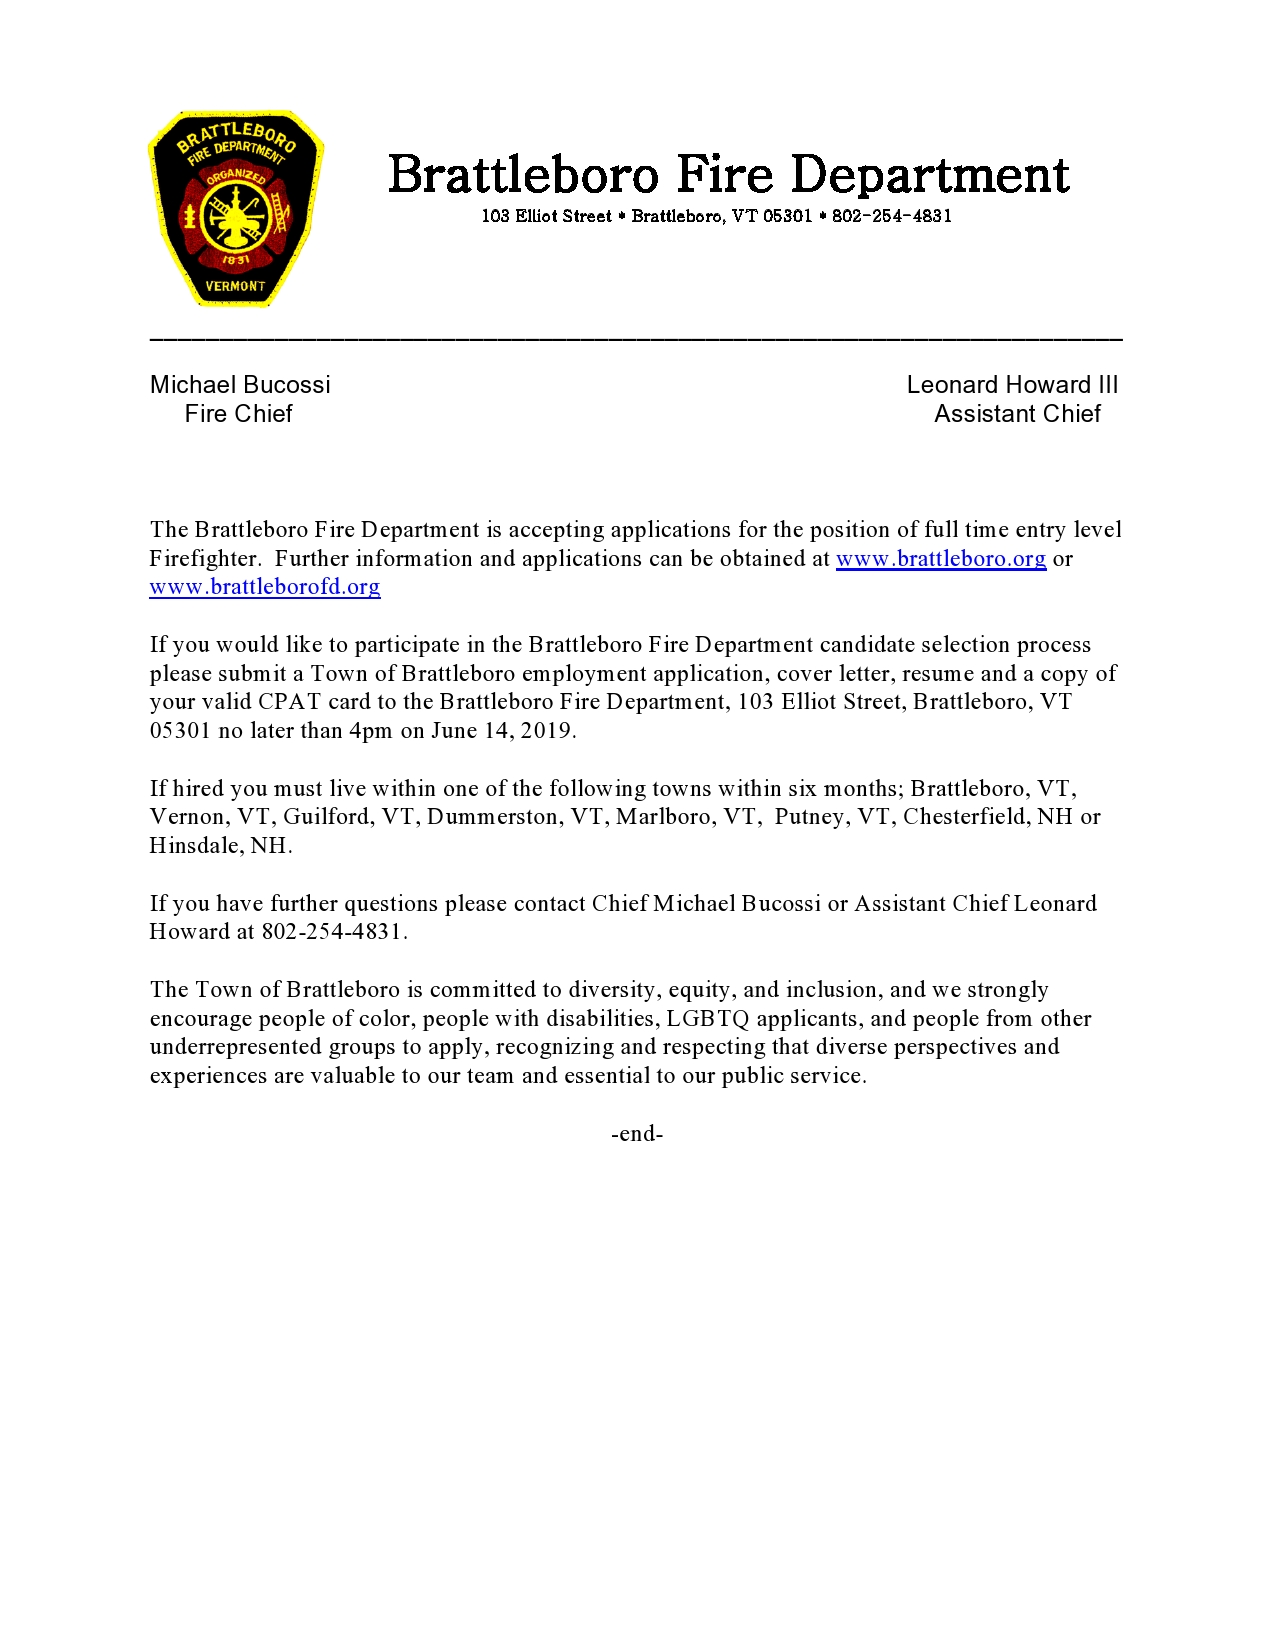 Fire Captain Cover Letter Fire Mutual Aid